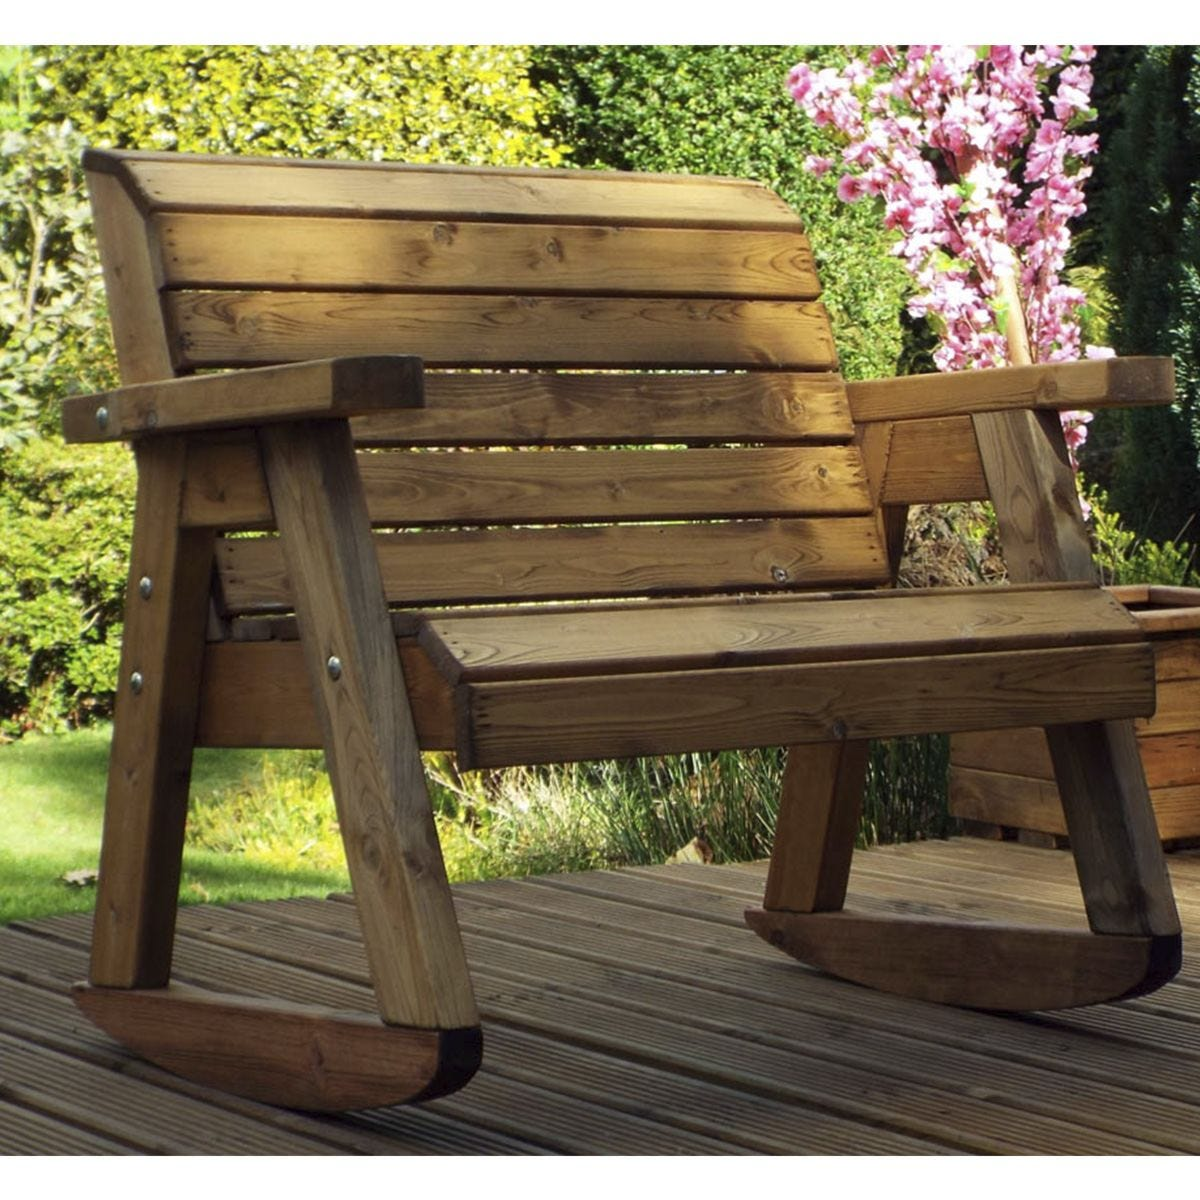 Charles Taylor Little Fella S Children S Wooden Bench Rocker Robert Dyas